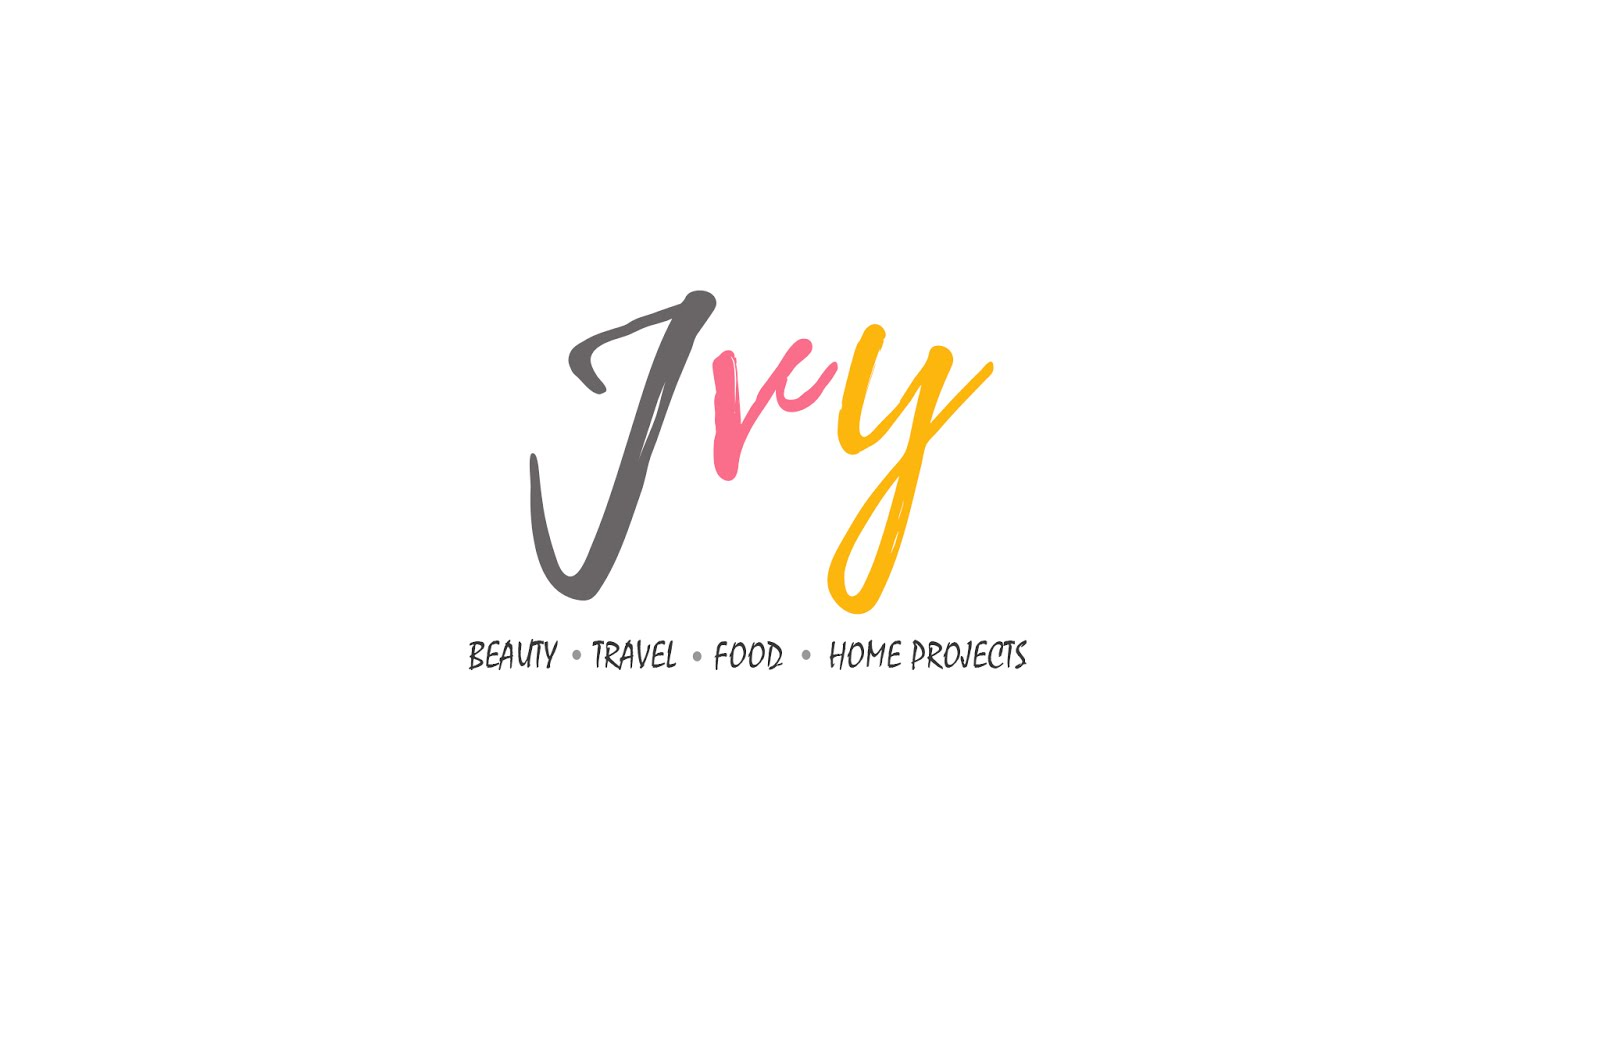 jjoyis | Singapore beauty, travel, & food reviews blog